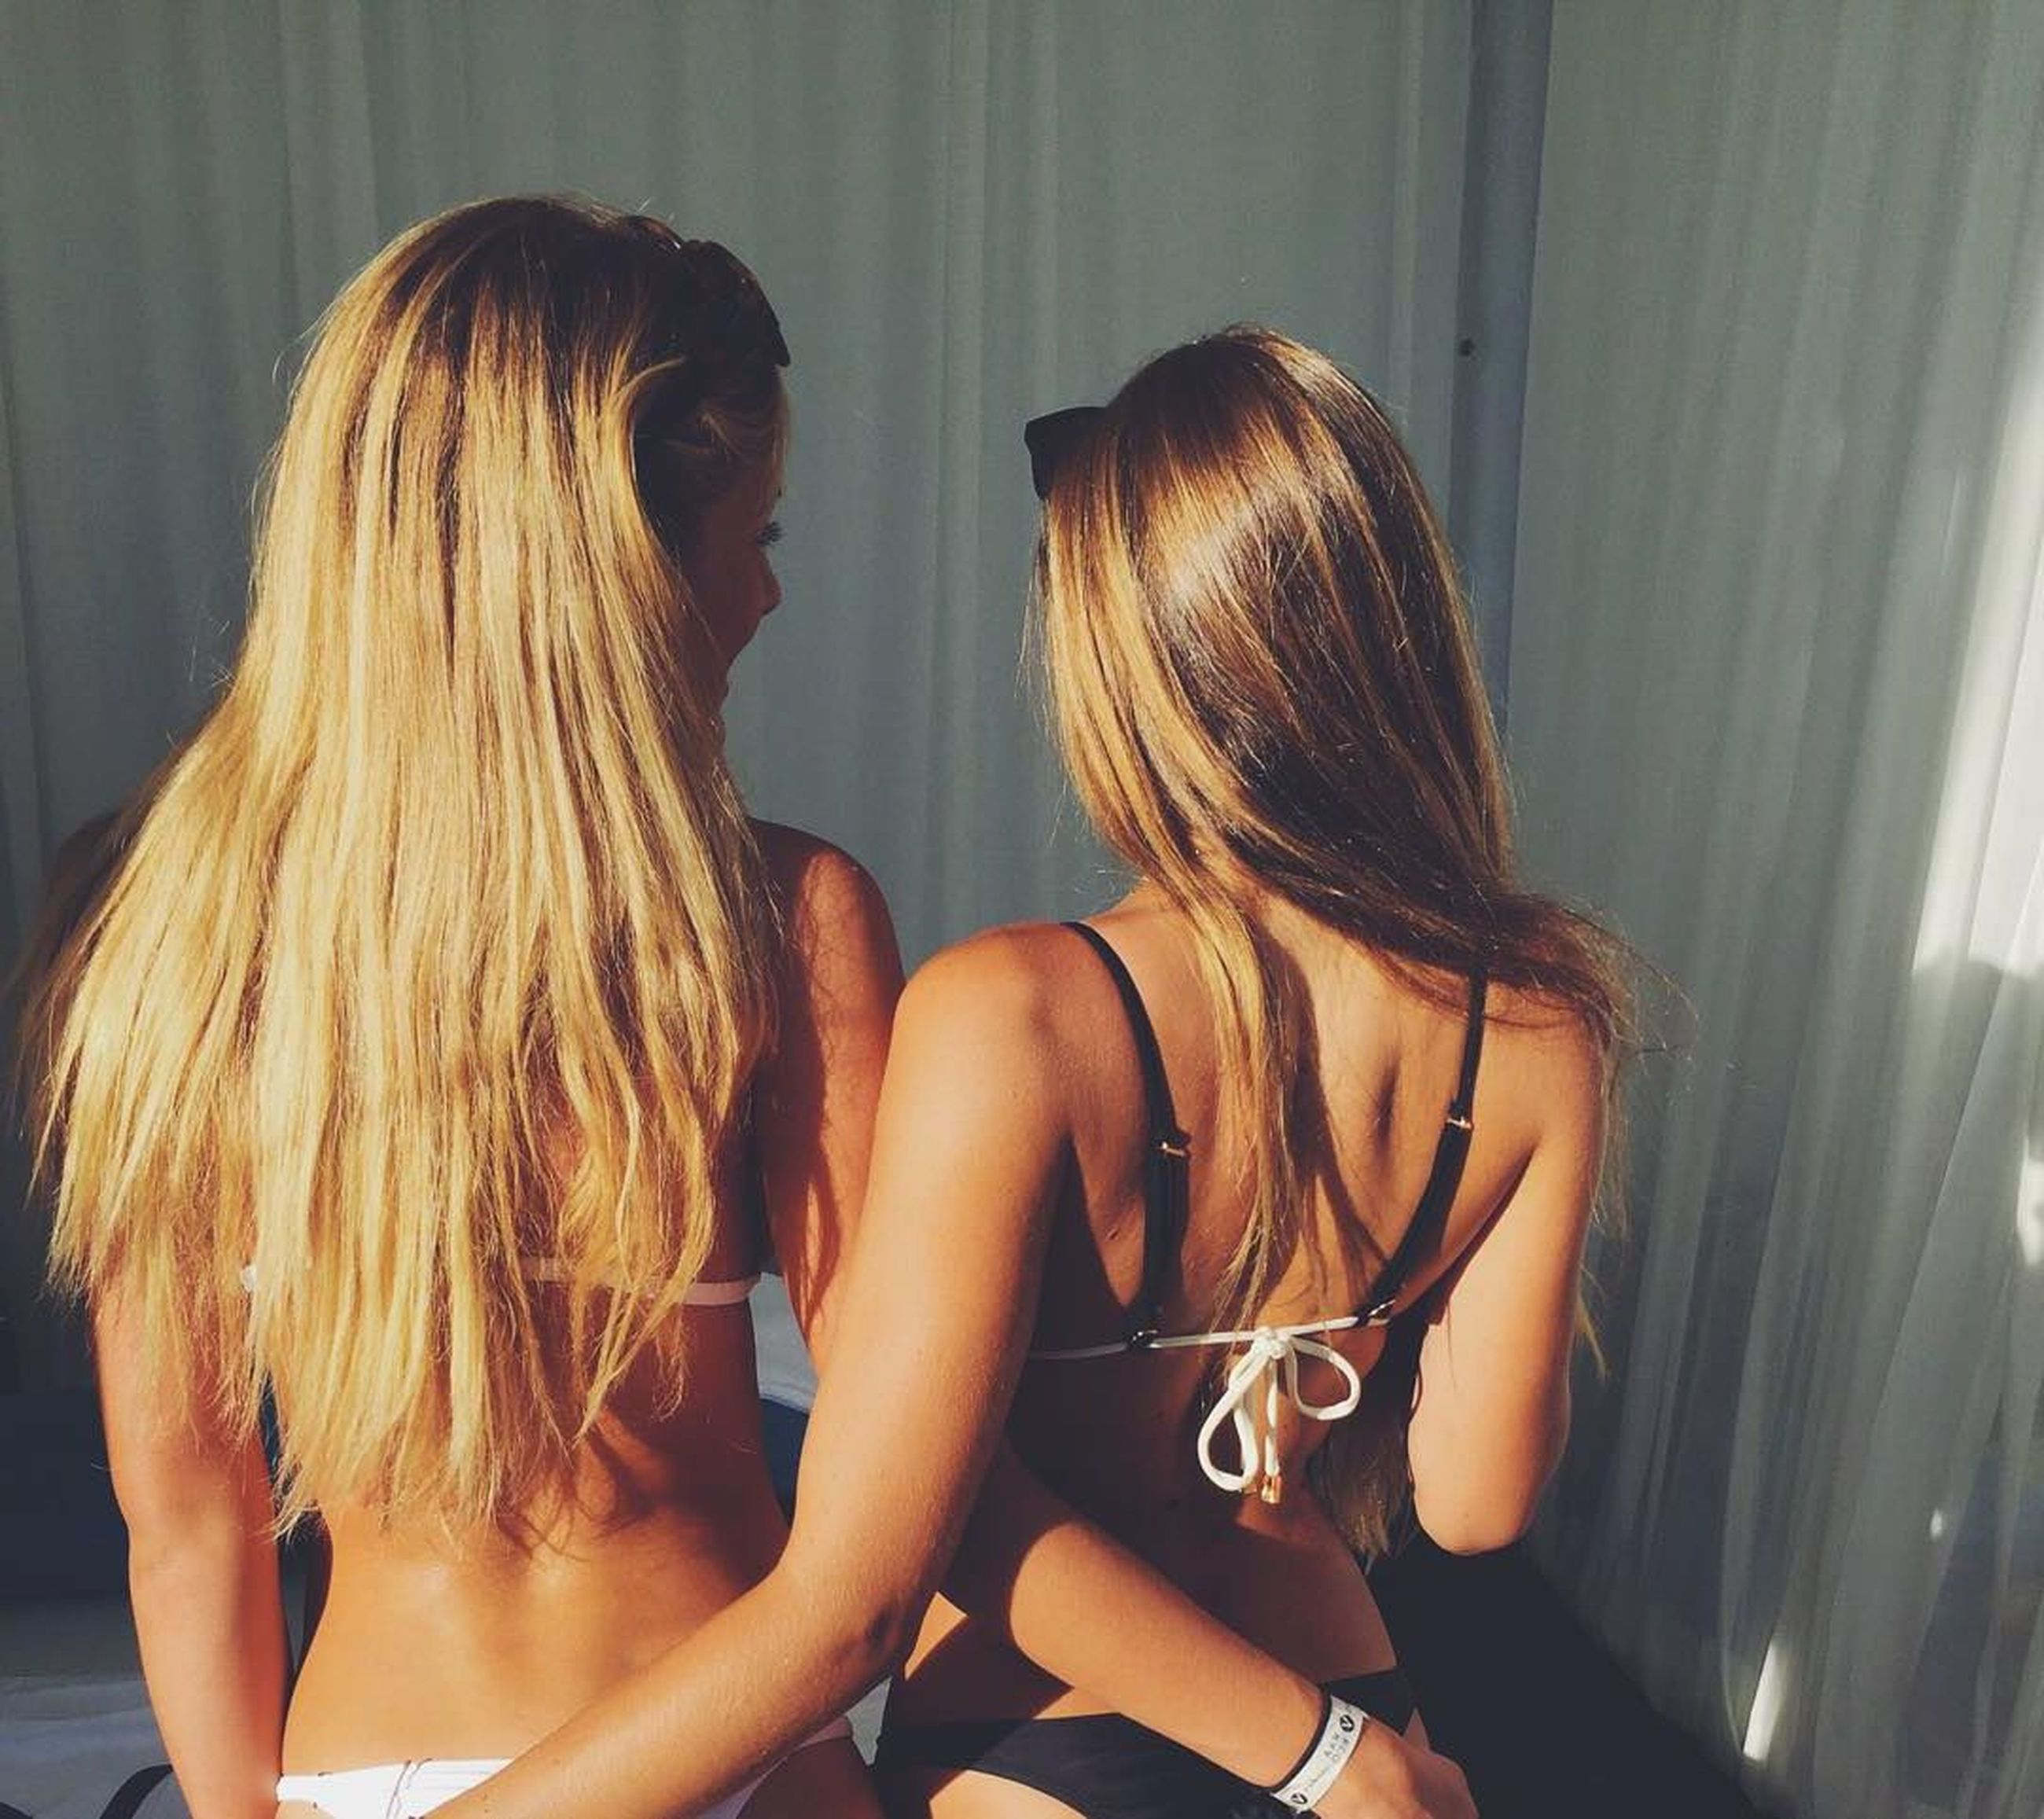 indoors, two people, young adult, friendship, togetherness, young women, blond hair, real people, day